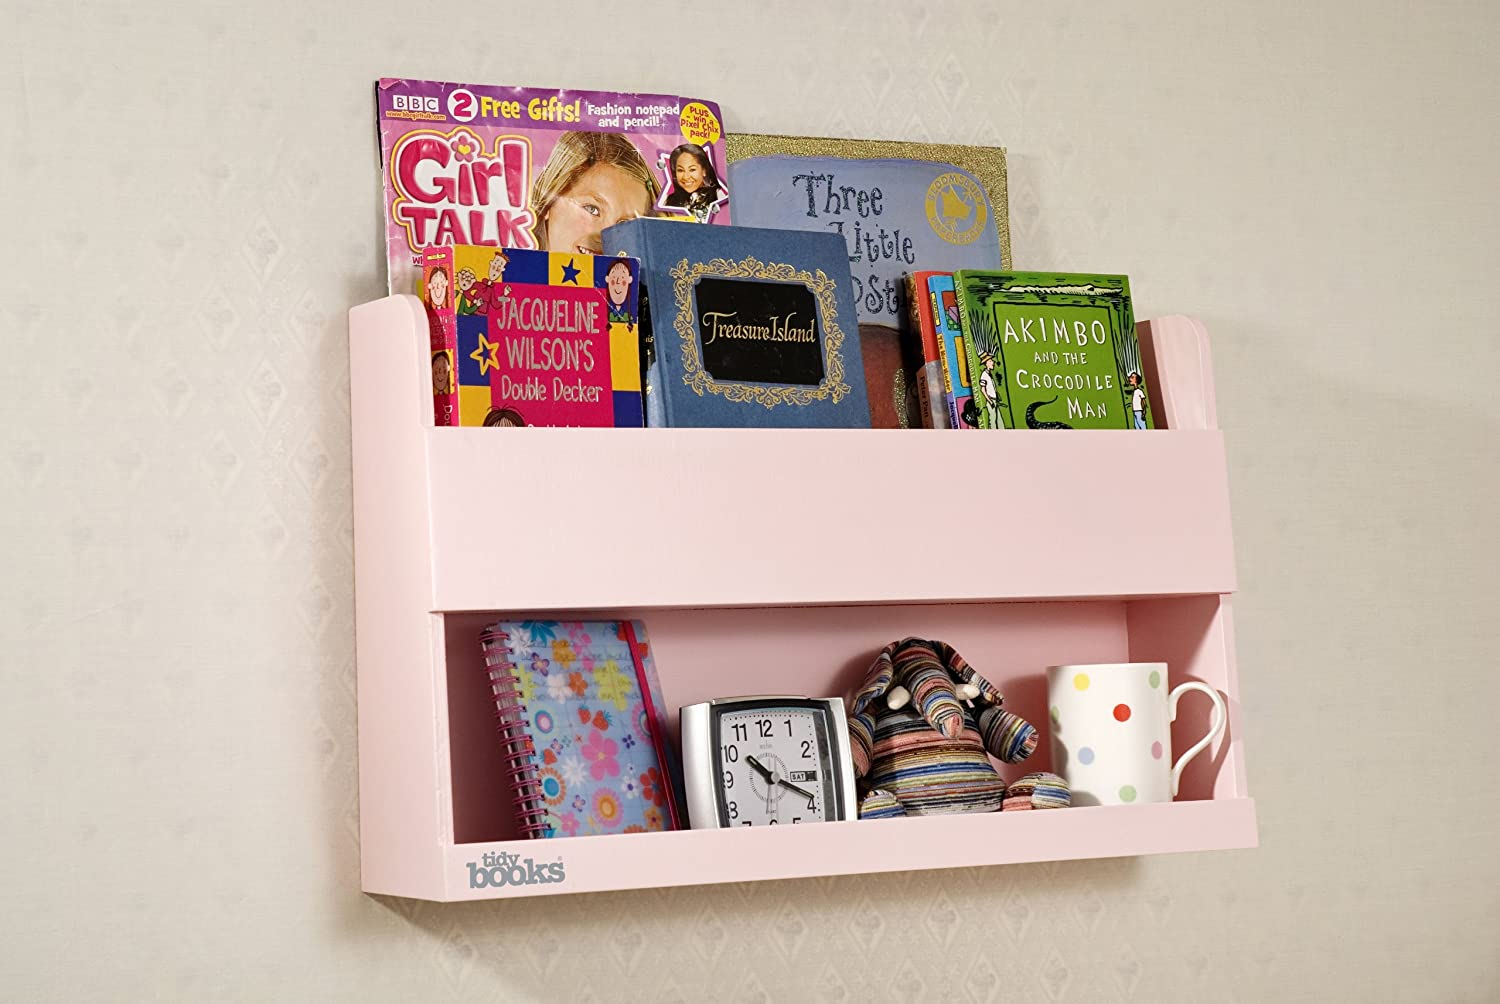 bedside buddy. Buy The Original Wooden Bunk Bed Shelf And Bedside Storage For Kids Rooms Online At Low Prices In India - Amazon.in Buddy